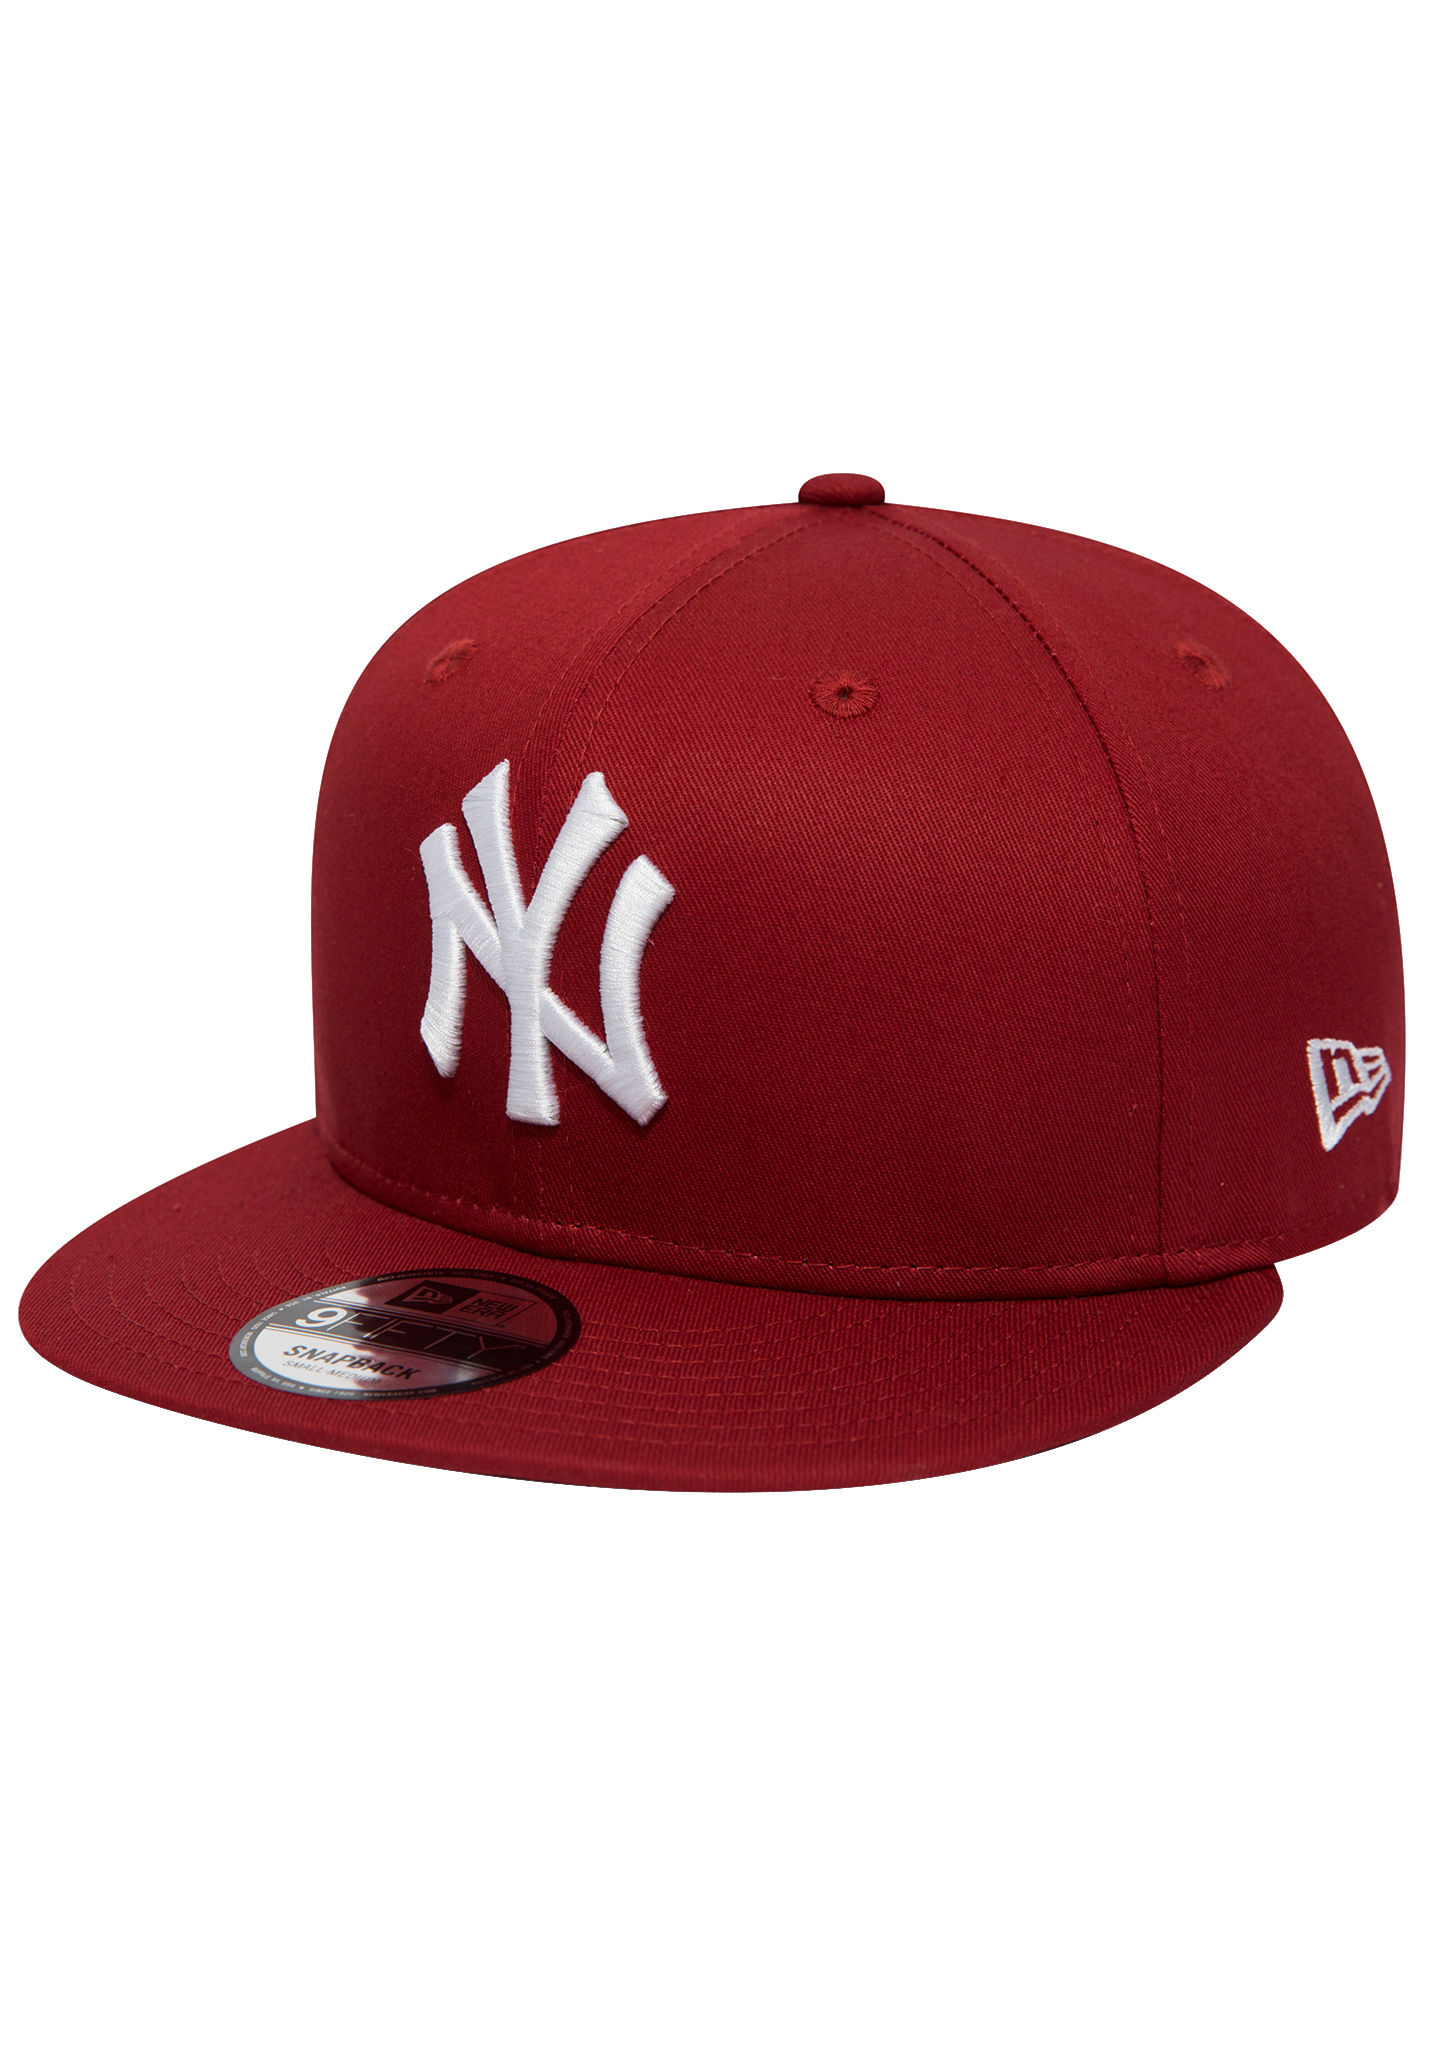 3589e91d0ed NEW Era 9Fifty New York Yankees - Snapback Cap - Red - Planet Sports